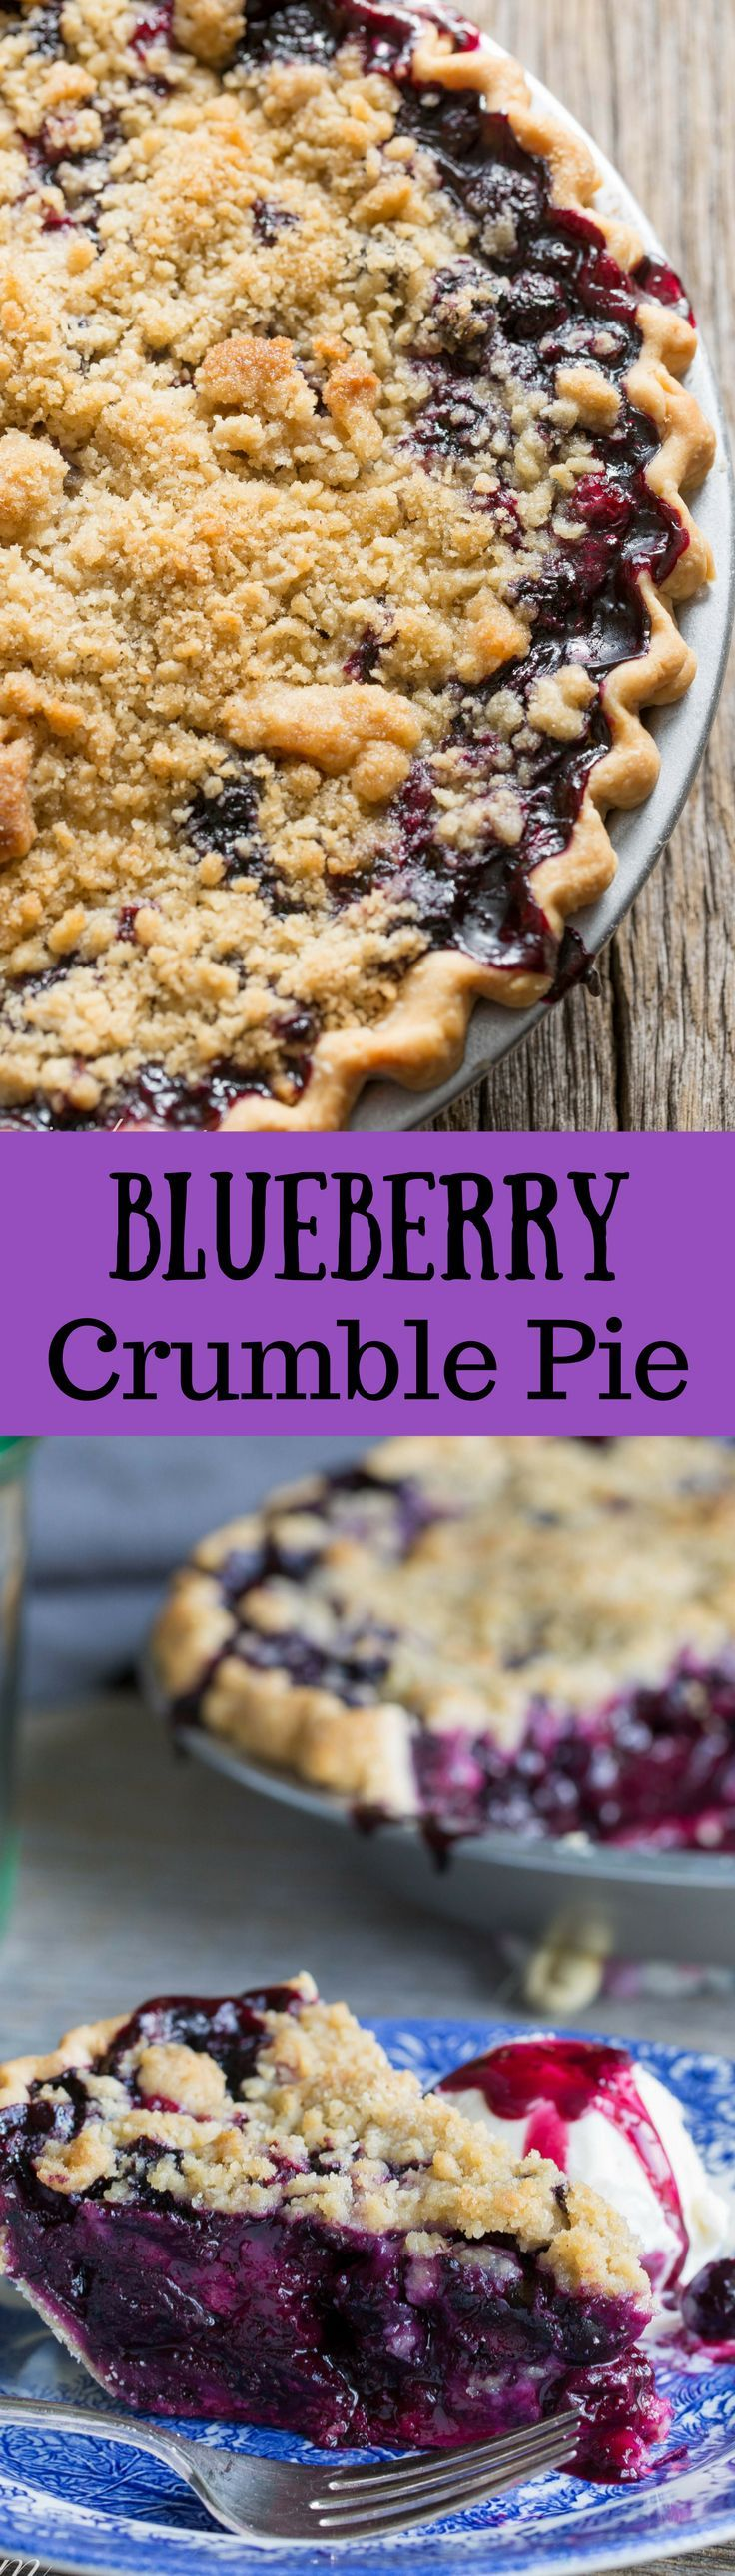 Blueberry Crumble Pie -Sweet blueberries topped with a crispy crumble all baked up in a wonderful summer pie. A must make for your ripe blueberries!Blueberry Crumble Pie -Sweet blueberries topped with a crispy crumble all baked up in a wonderful summer pie. A must make for your ripe blueberries!www.savingdessert...